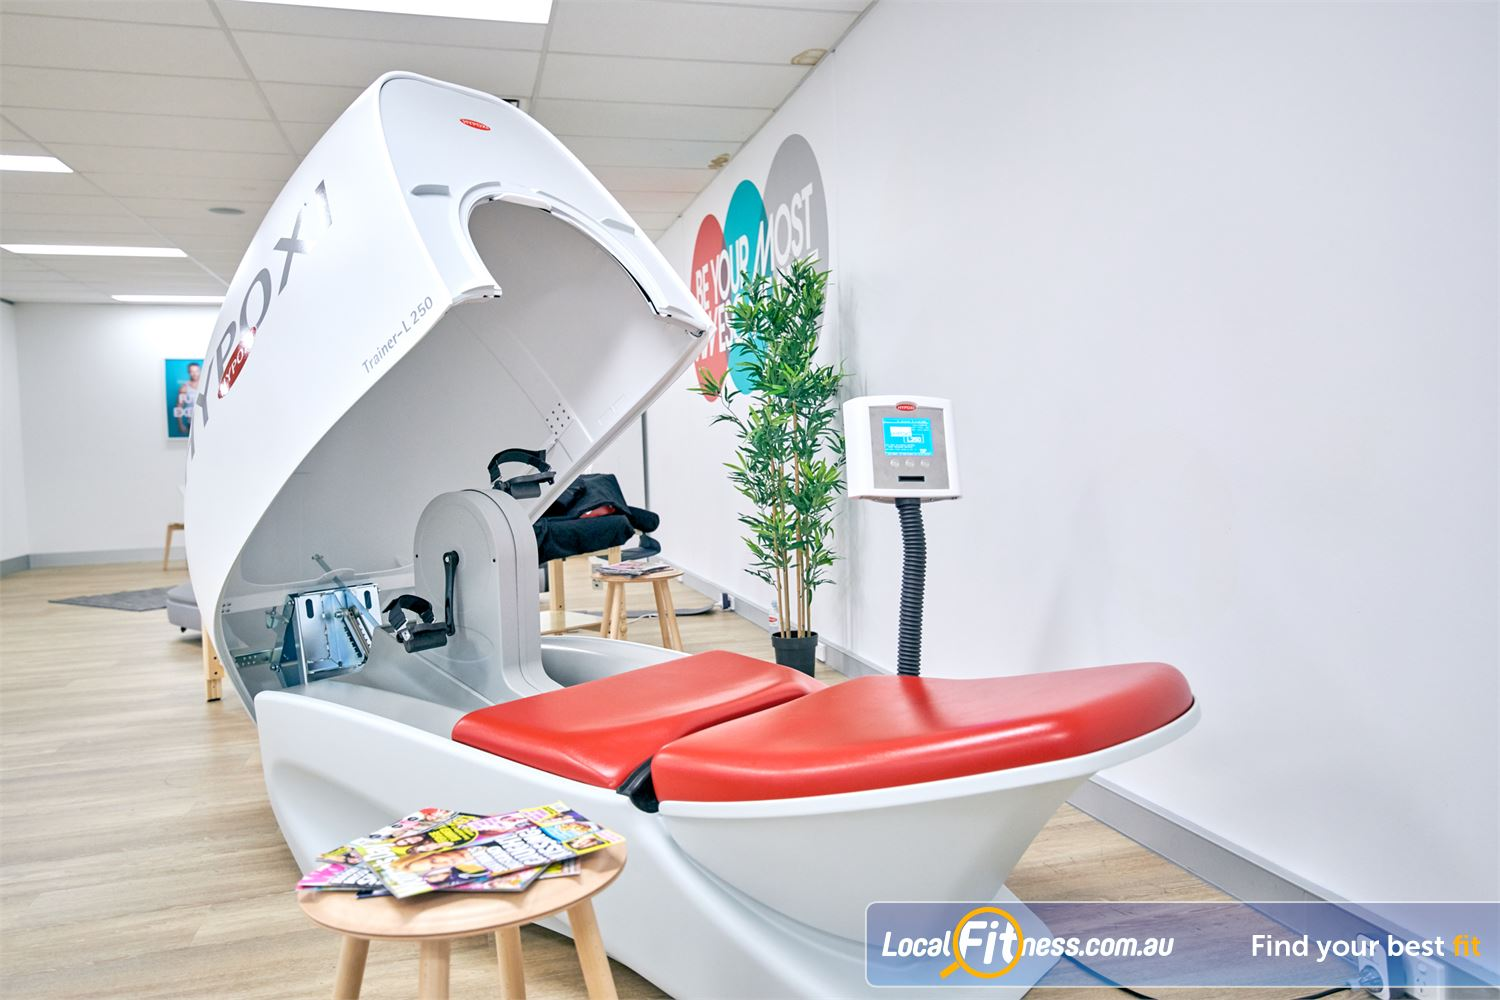 HYPOXI Weight Loss Near Clontarf The HYPOXI L250 is like a cycle machine from the future.